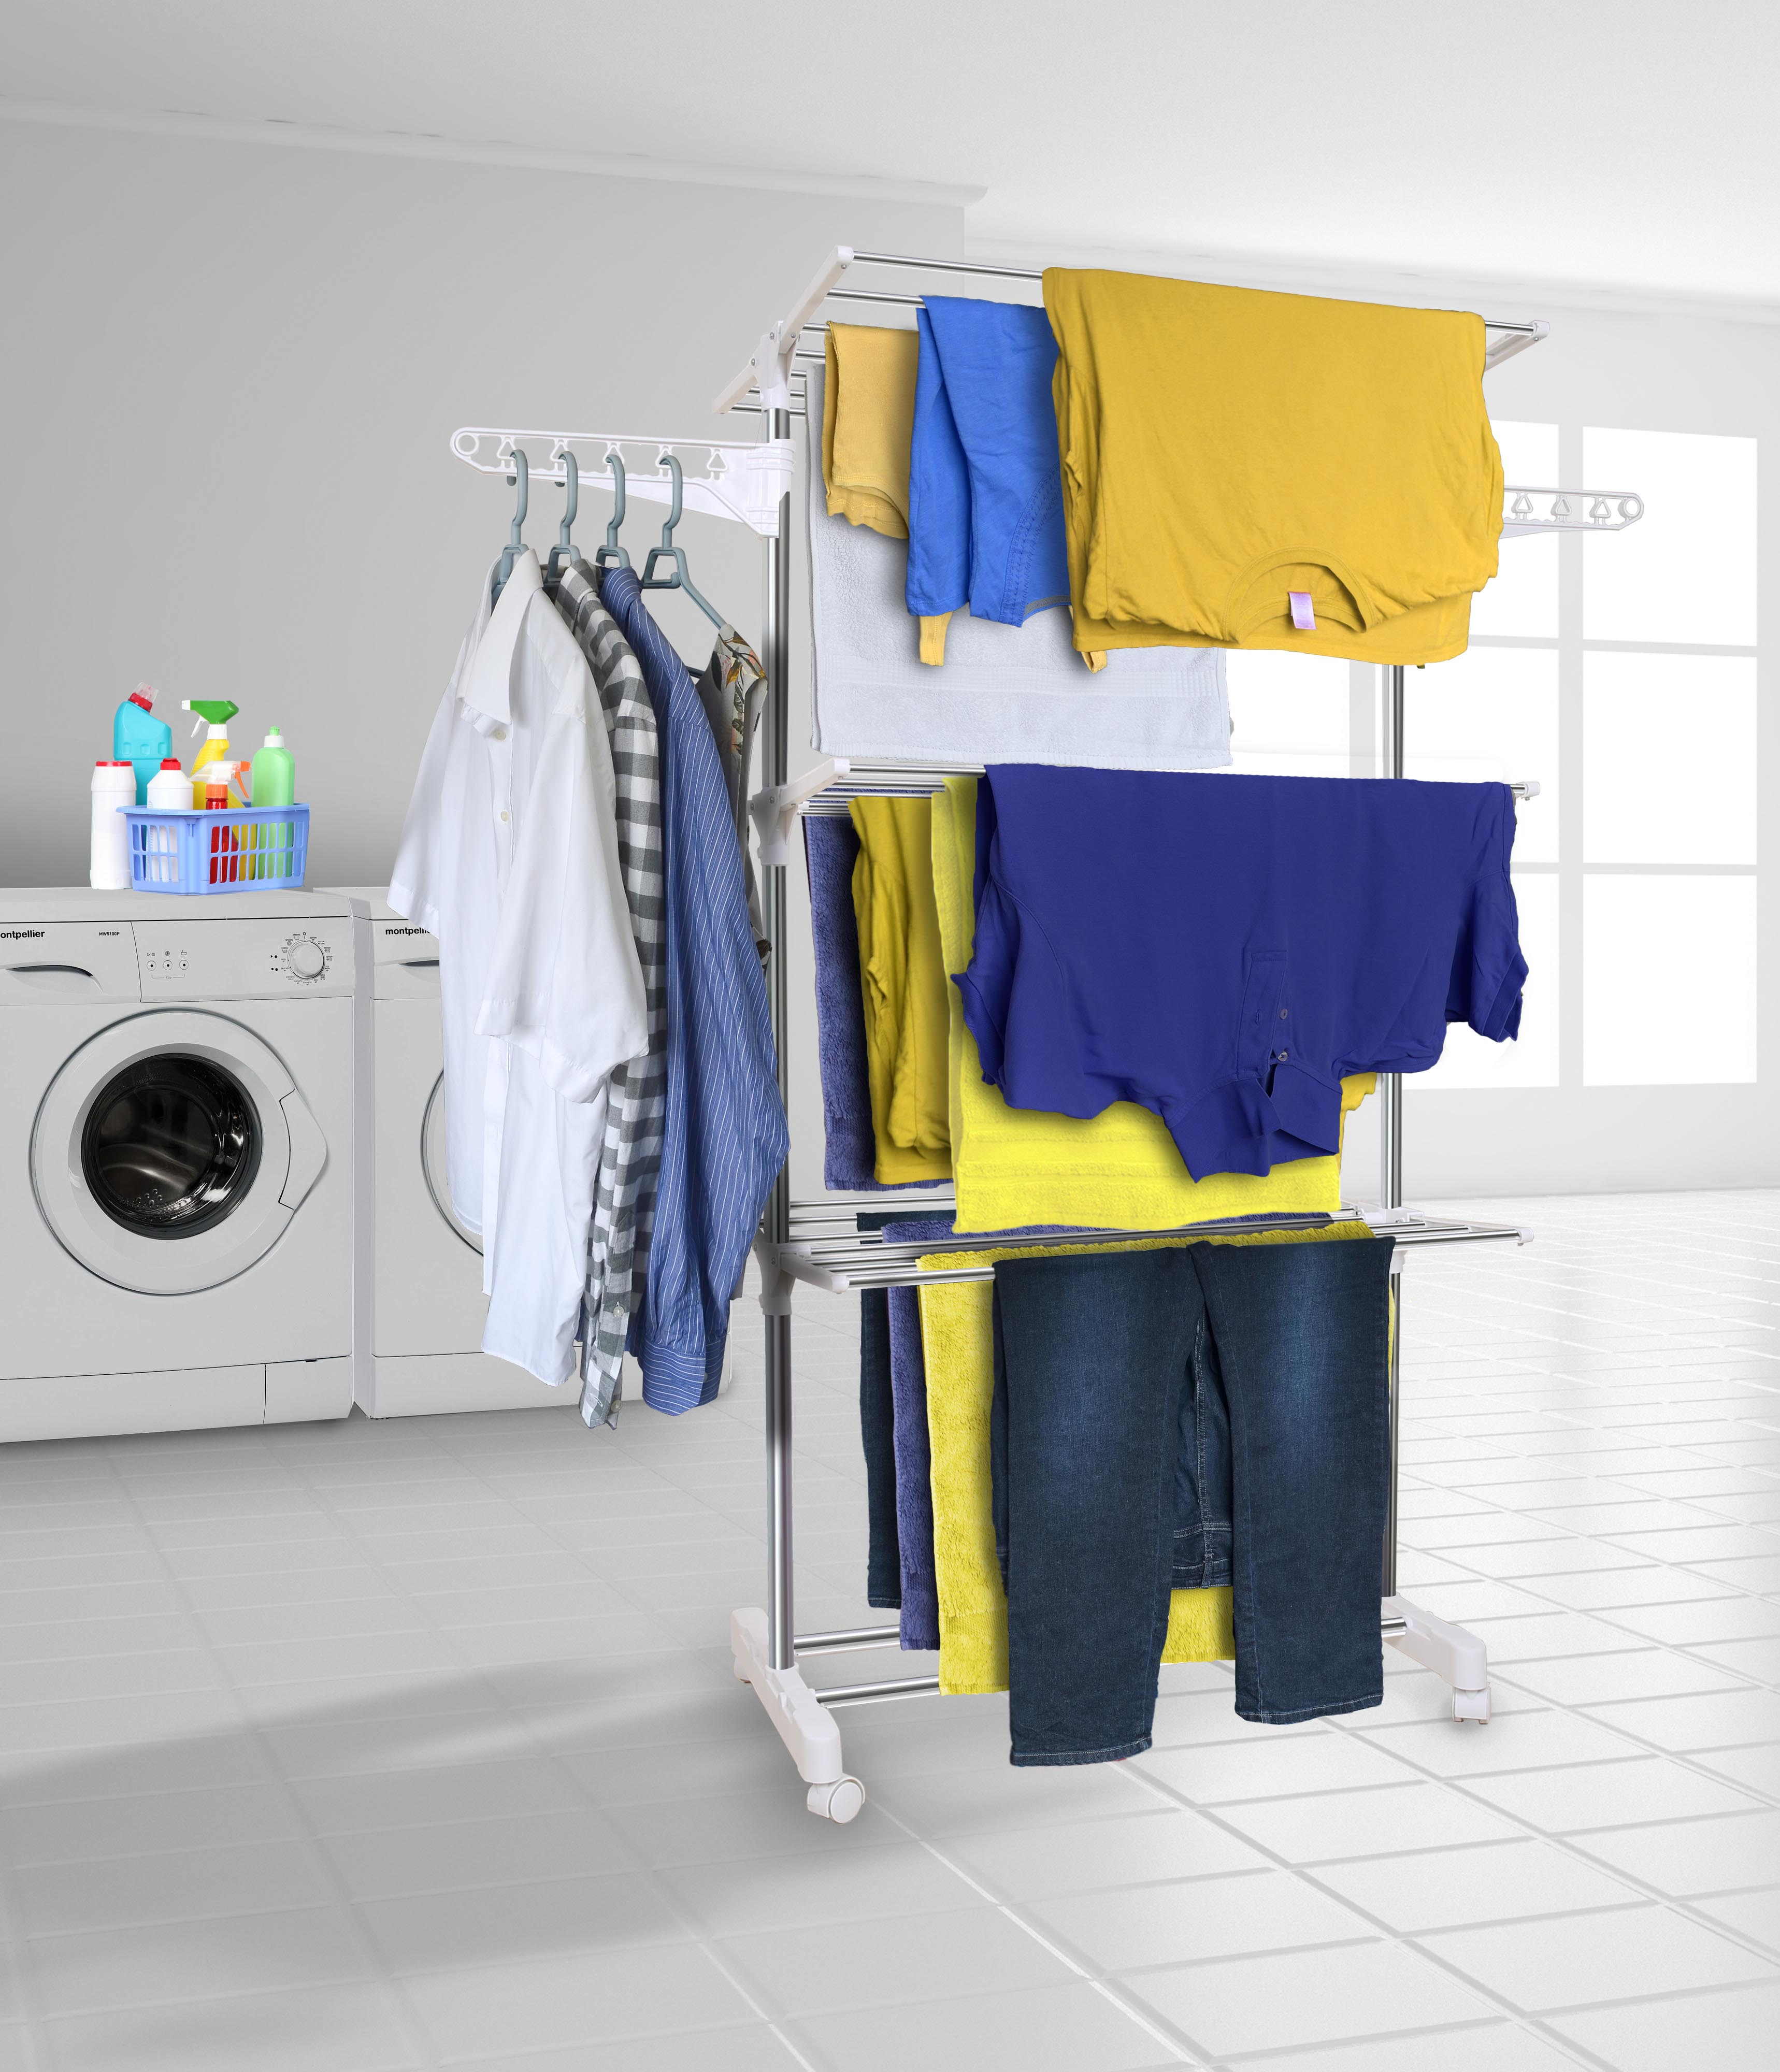 Small Clothes Dryer Clothes Airer Drying Rack Extra Large 3 Tier Clothes